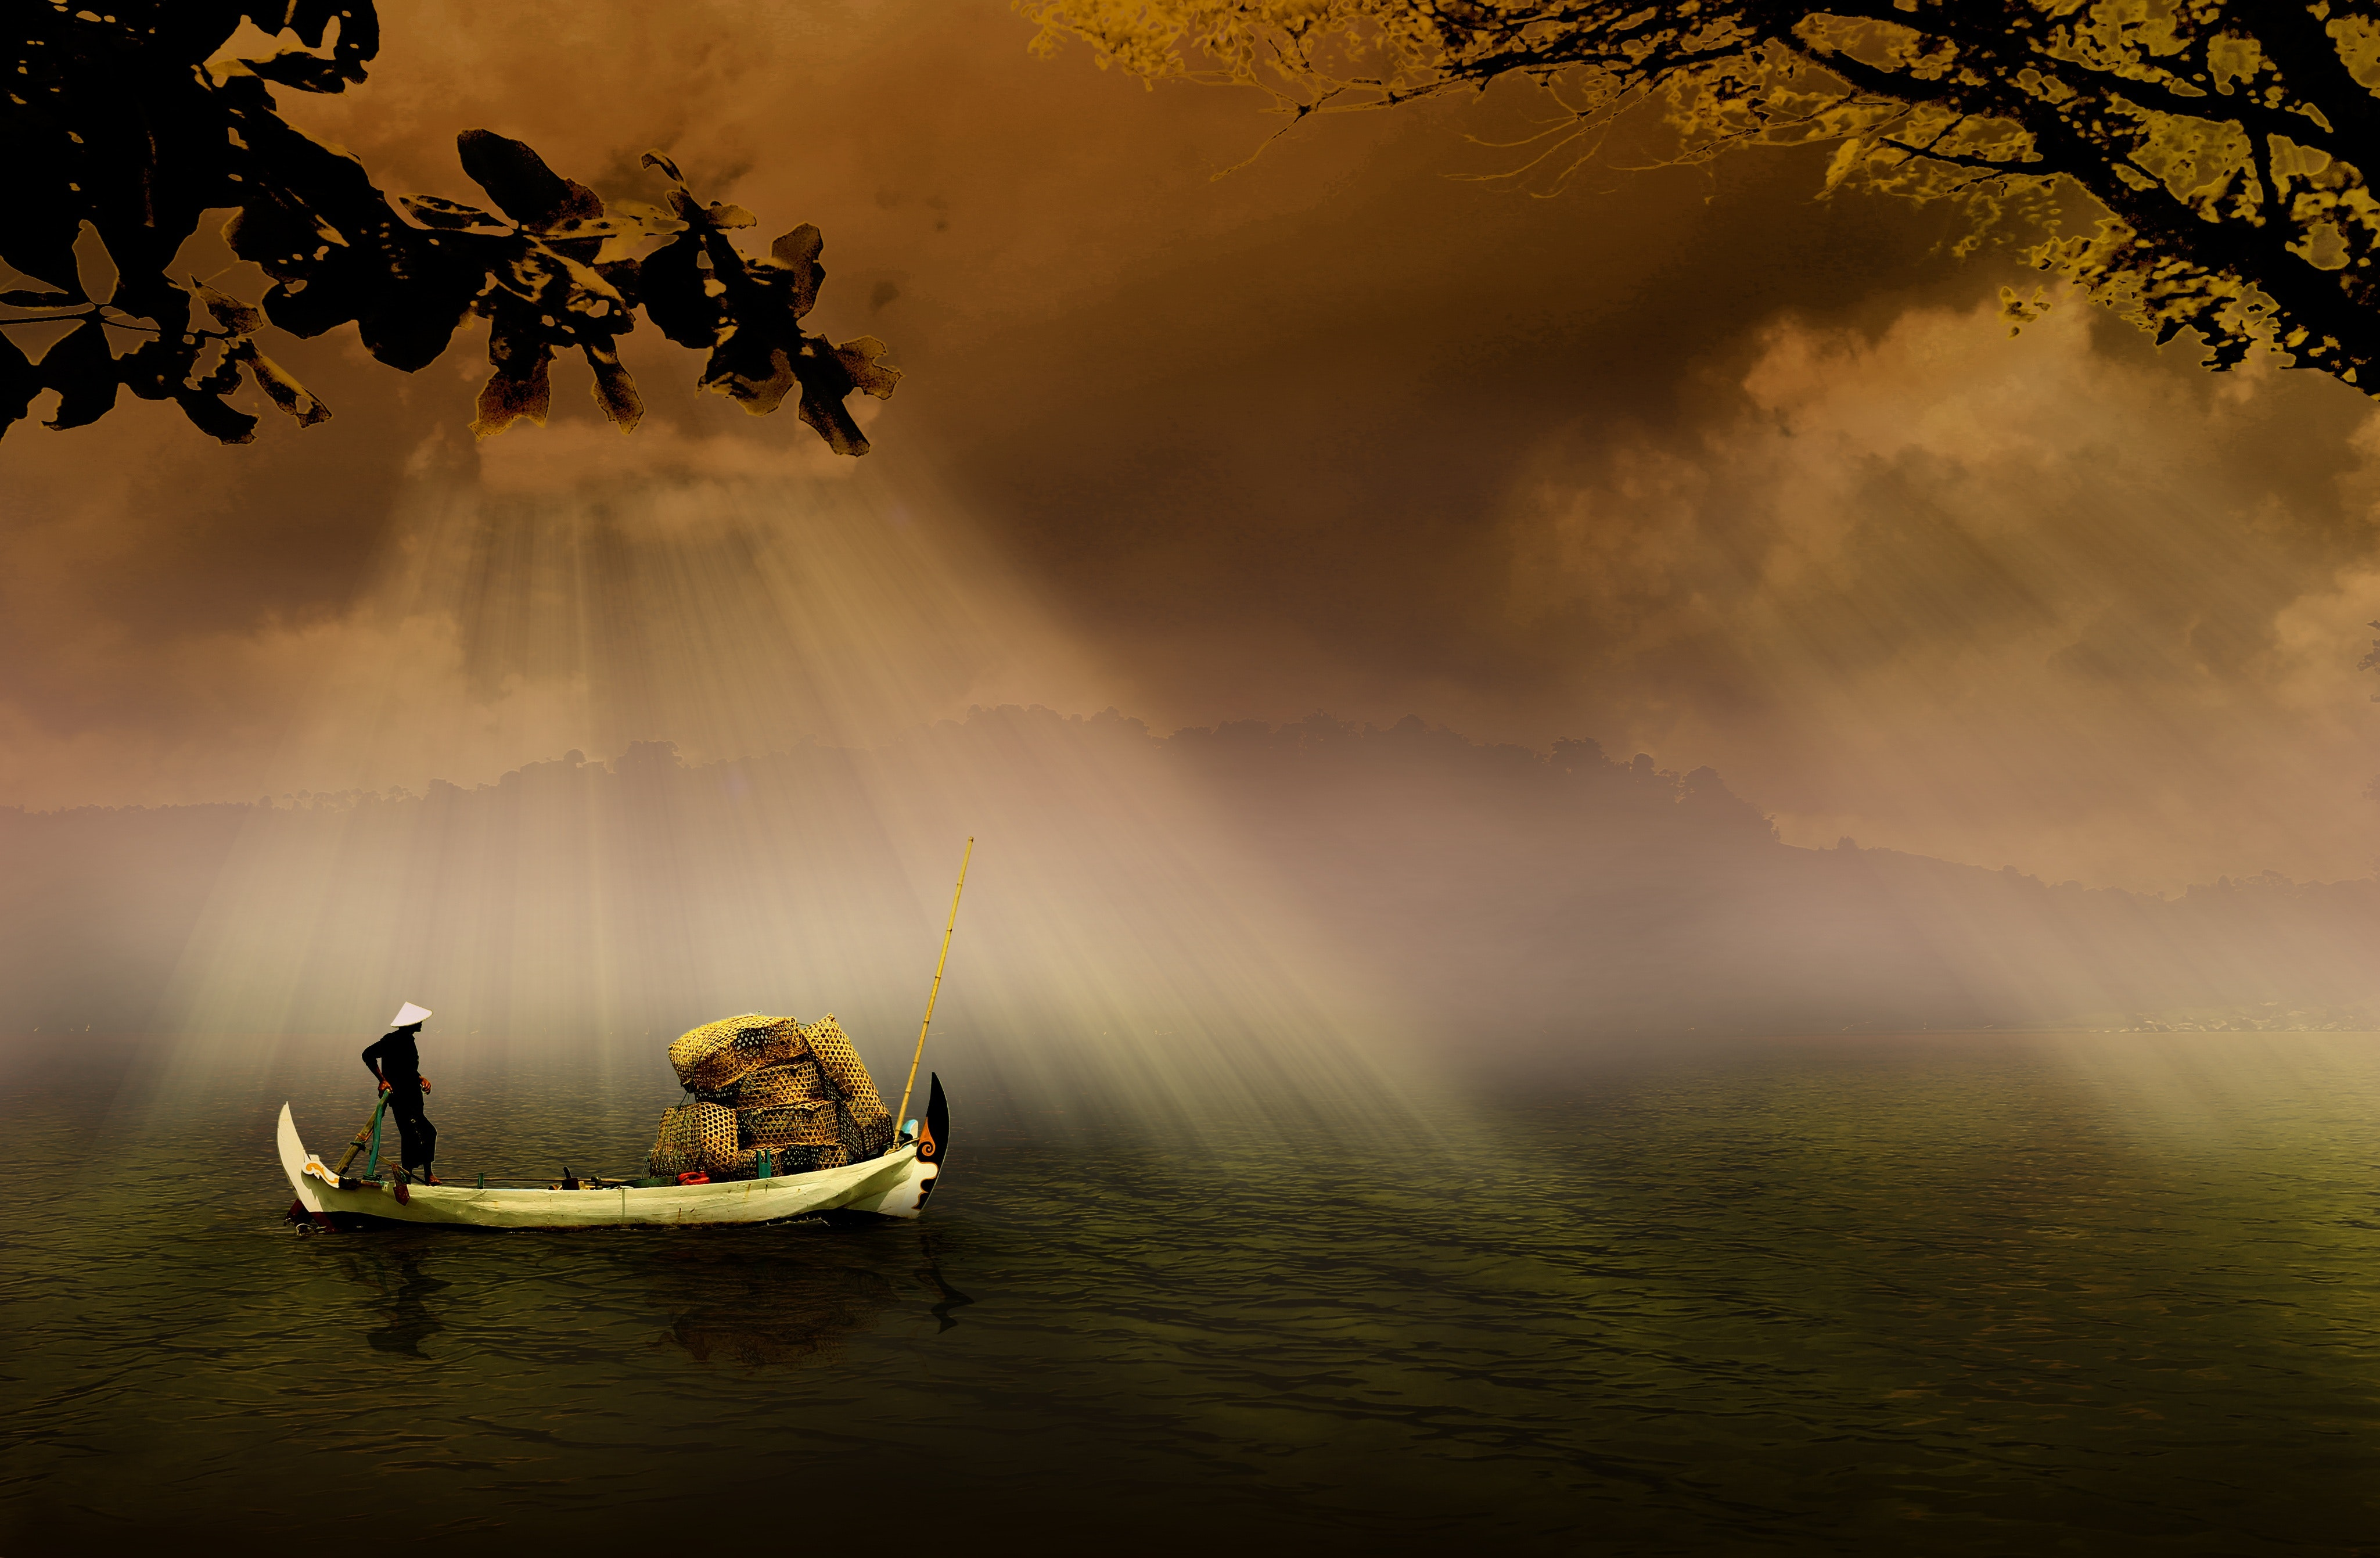 Man in a White Boat in Sea during Daytime, Bamboo, Murky, Tree branches, Traveling, HQ Photo